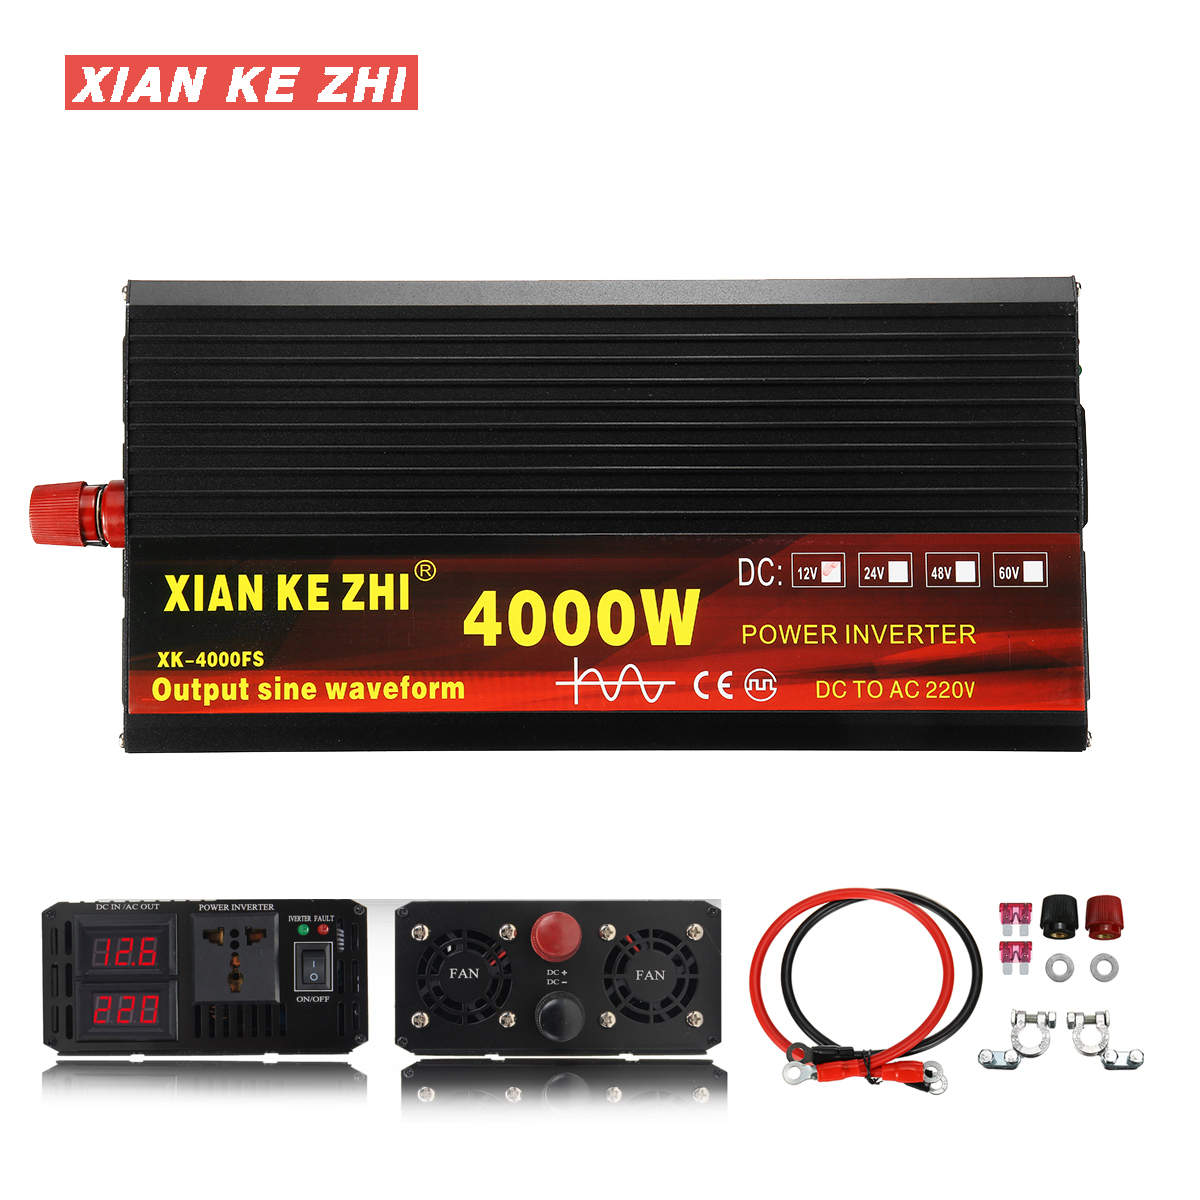 LL dawn 2000W Car Power Inverter Modified Sine Wave DC to AC 12V 24 V to 220V-240V 6000W Peak Power with USB Charging Ports and AC Outlet,12v